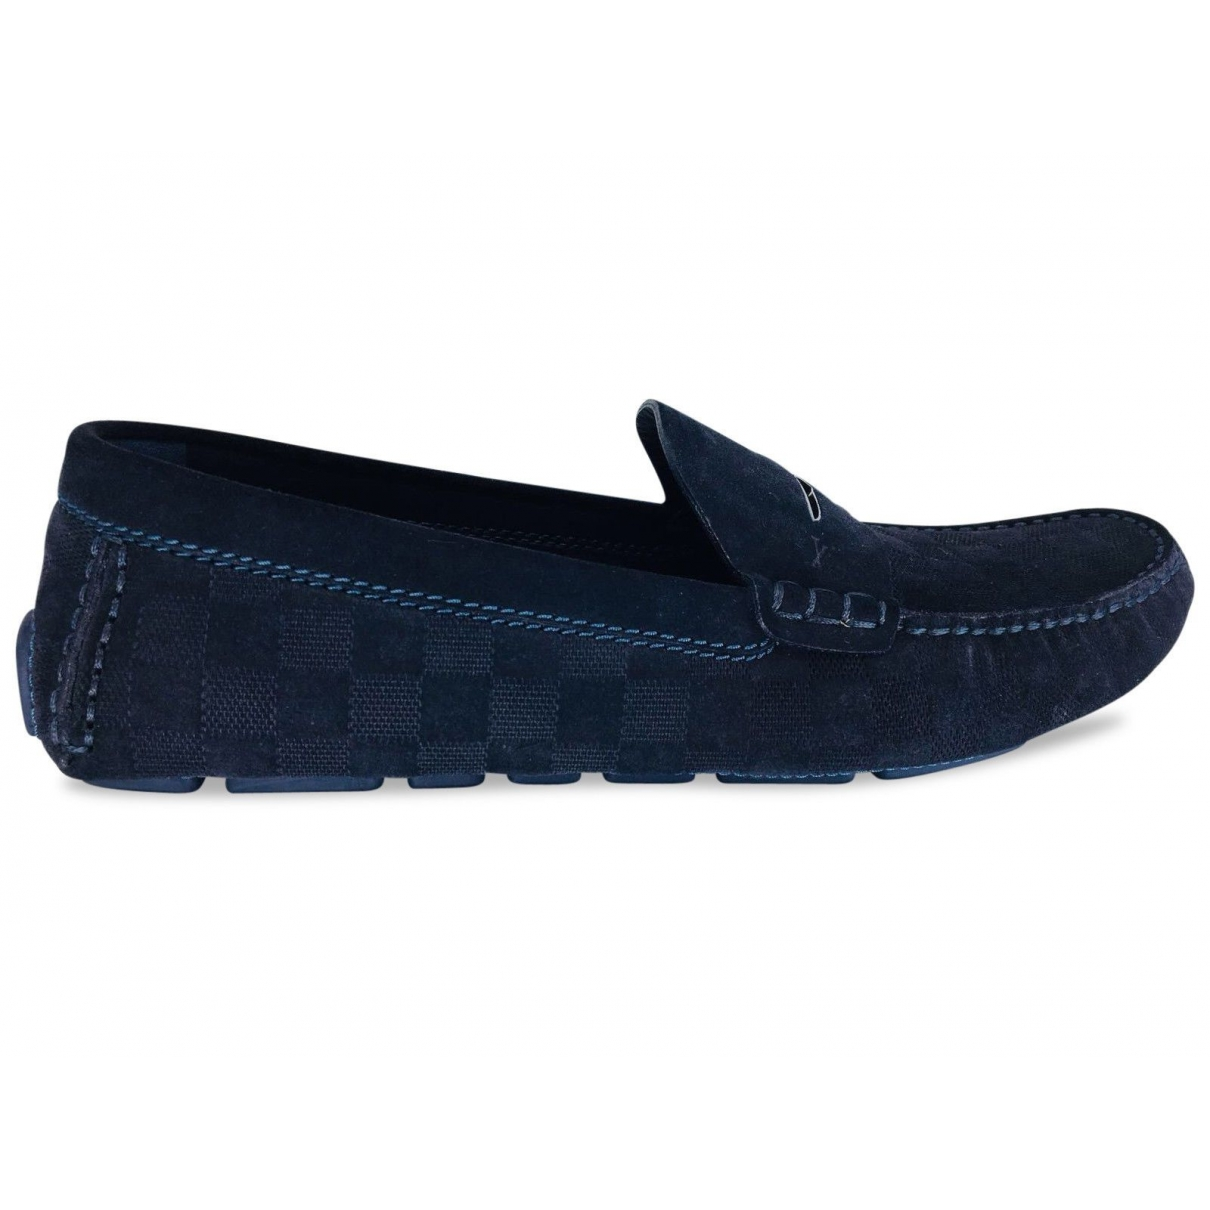 Louis Vuitton \N Navy Suede Flats for Men 11 UK